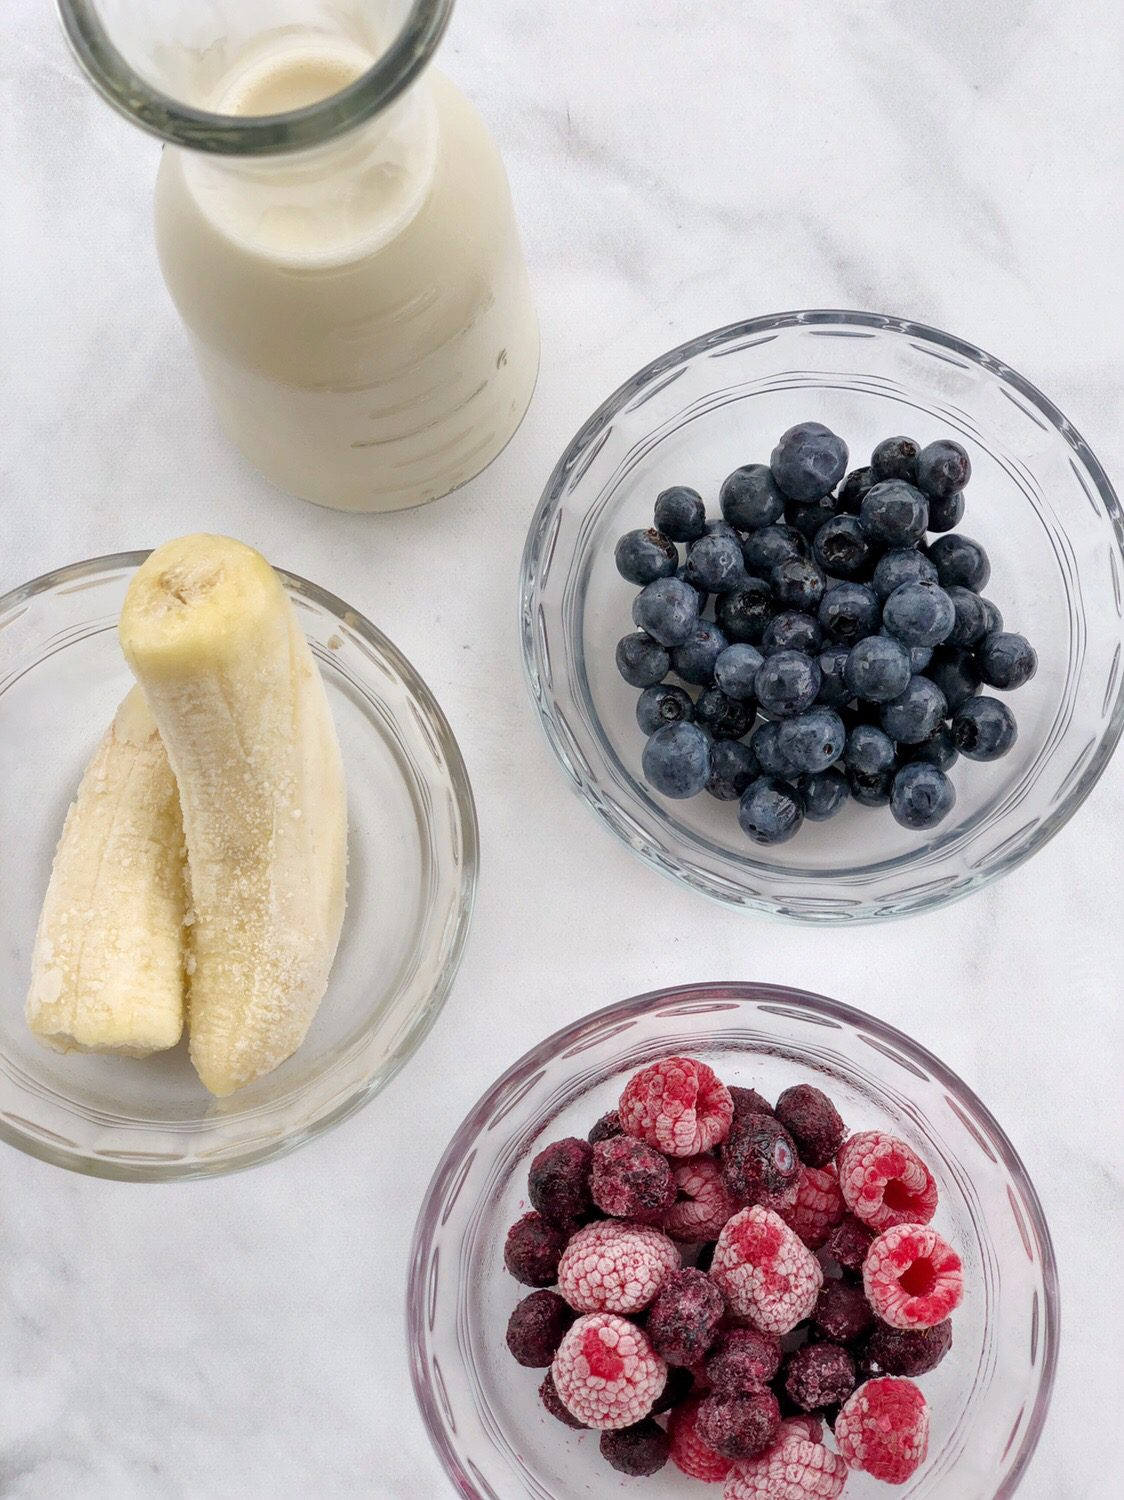 How To Make an Acai Bowl at Home